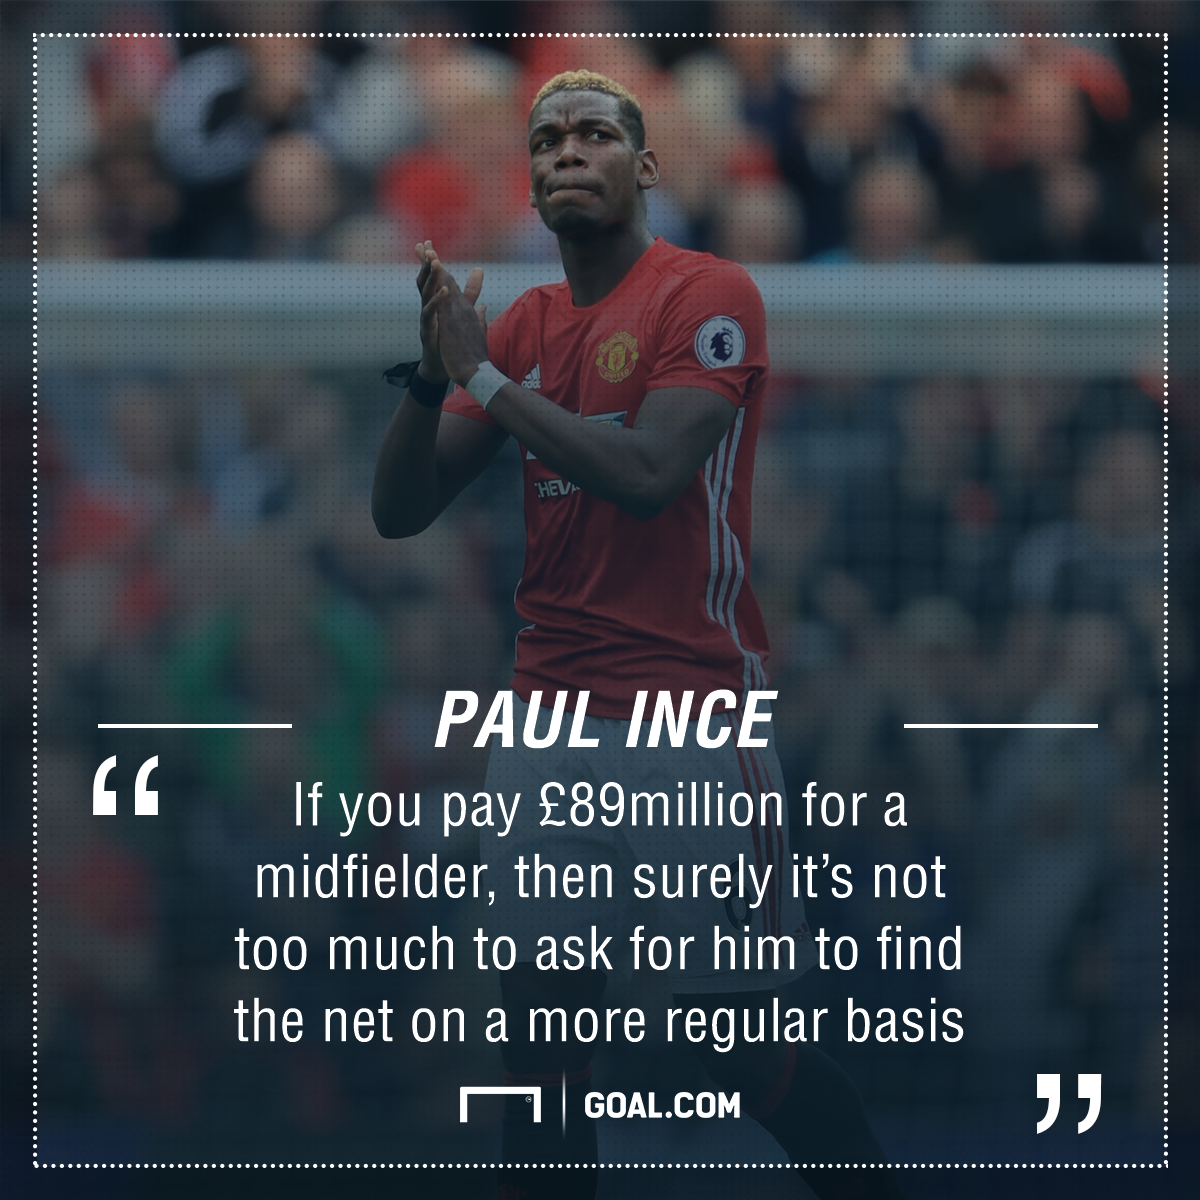 Pogba and Co. criticised for lack of goals as Man Utd urged to get A-listers by Ince